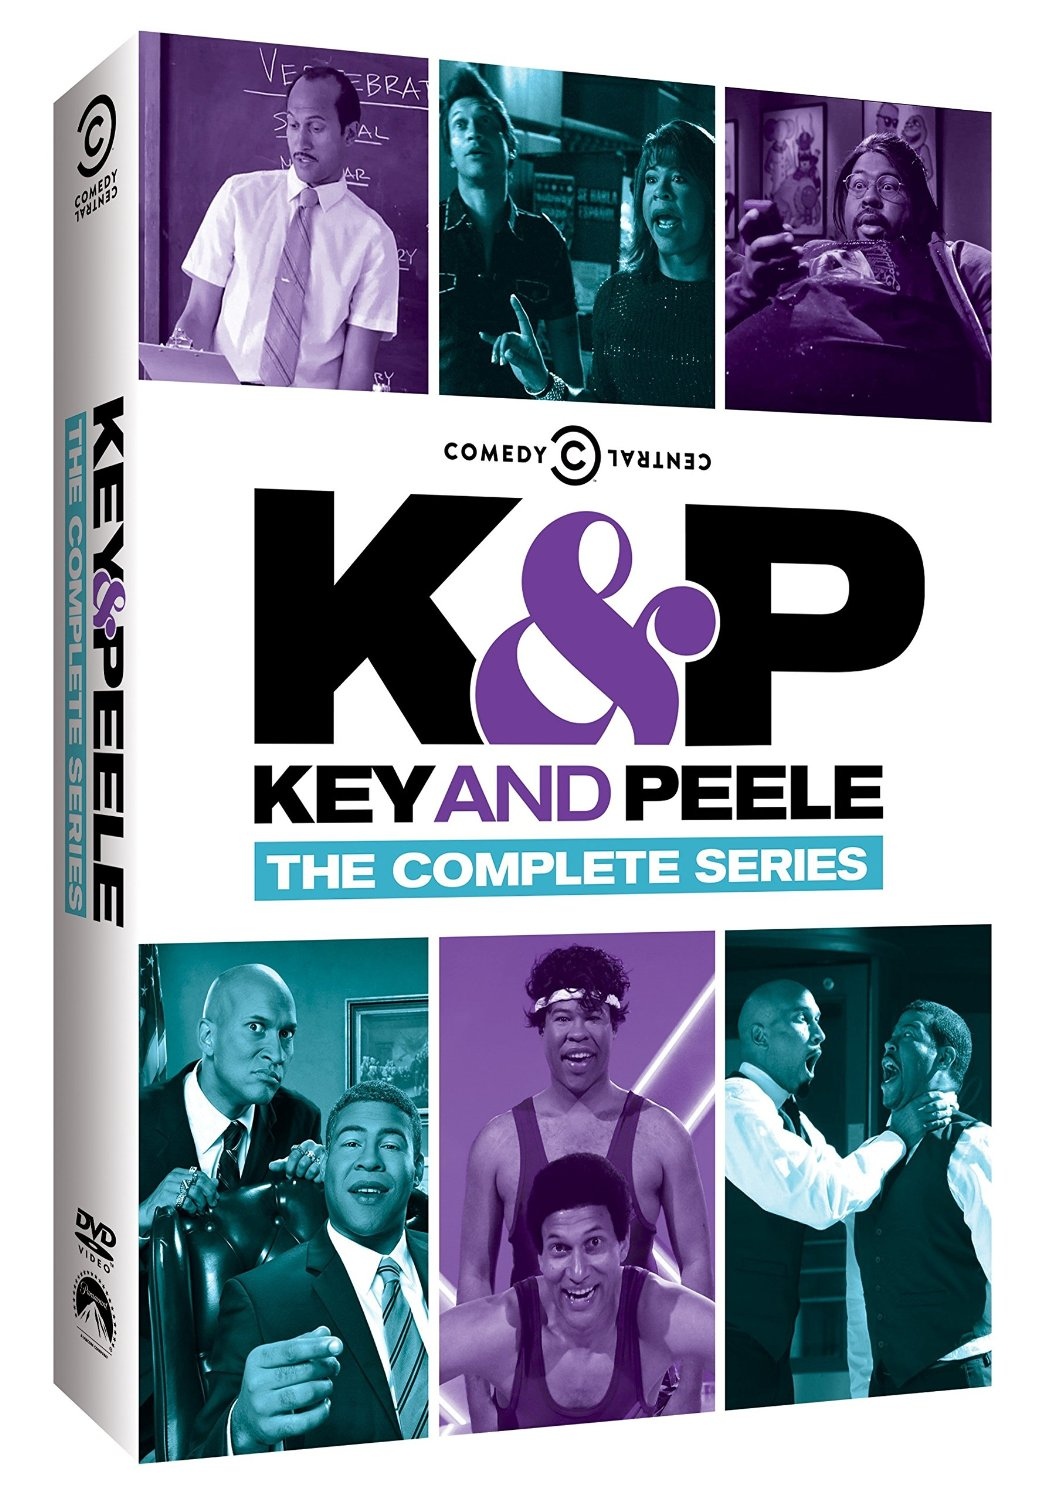 Key and Peele The Complete Series Blu-ray Review